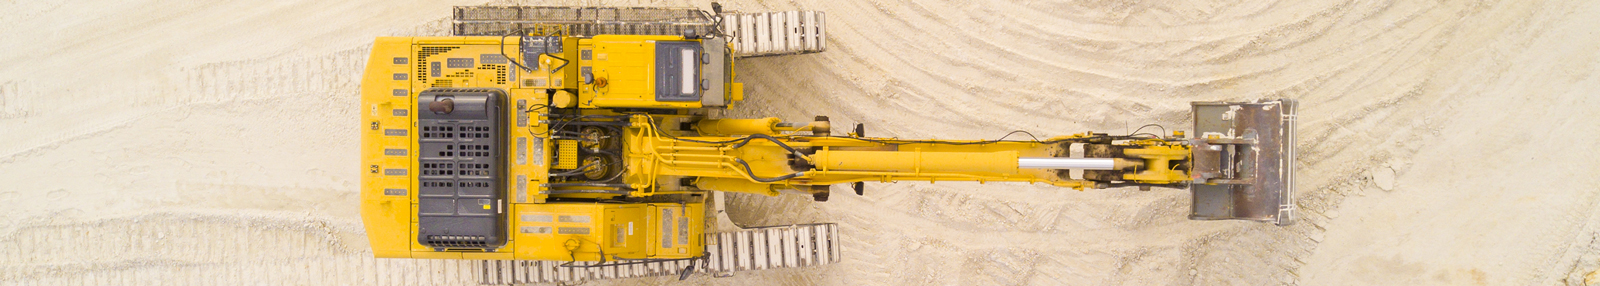 yellow excavator from air